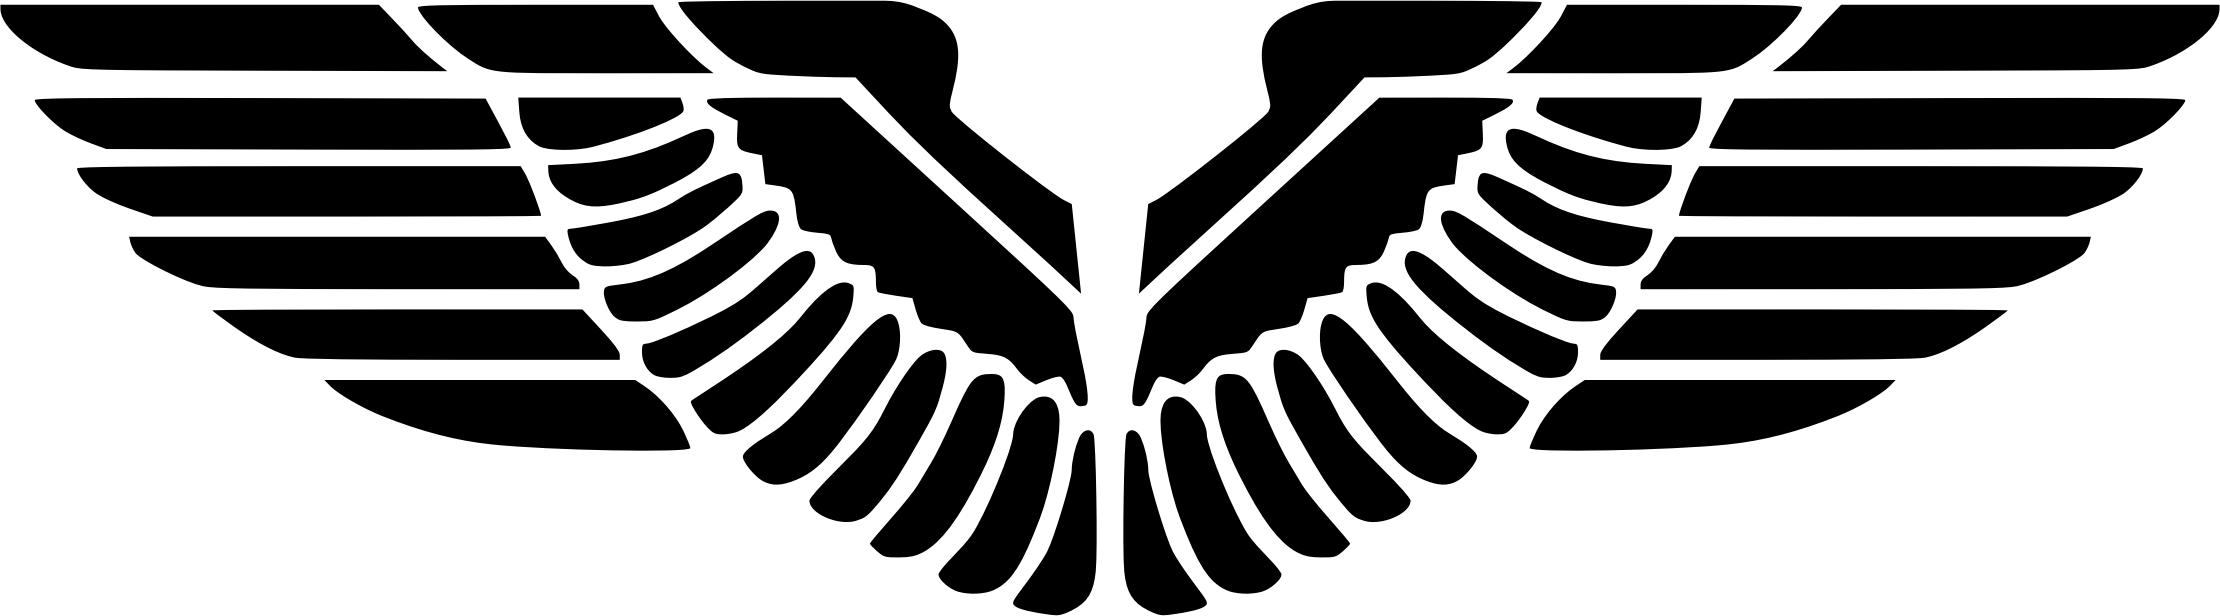 Eagle Wings Silhouette Icons PNG